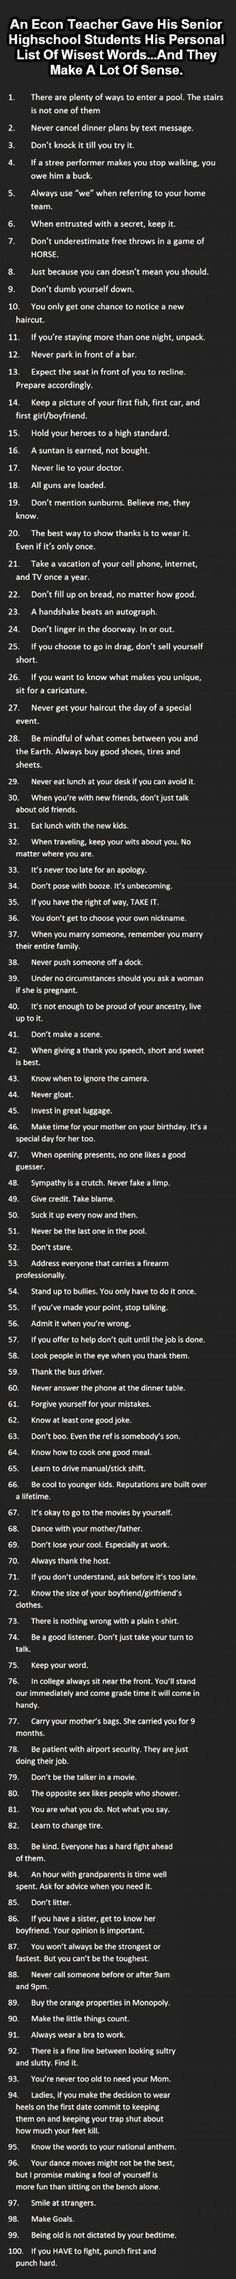 Wow I like a great number of those. Wise words | DailyFailCenter